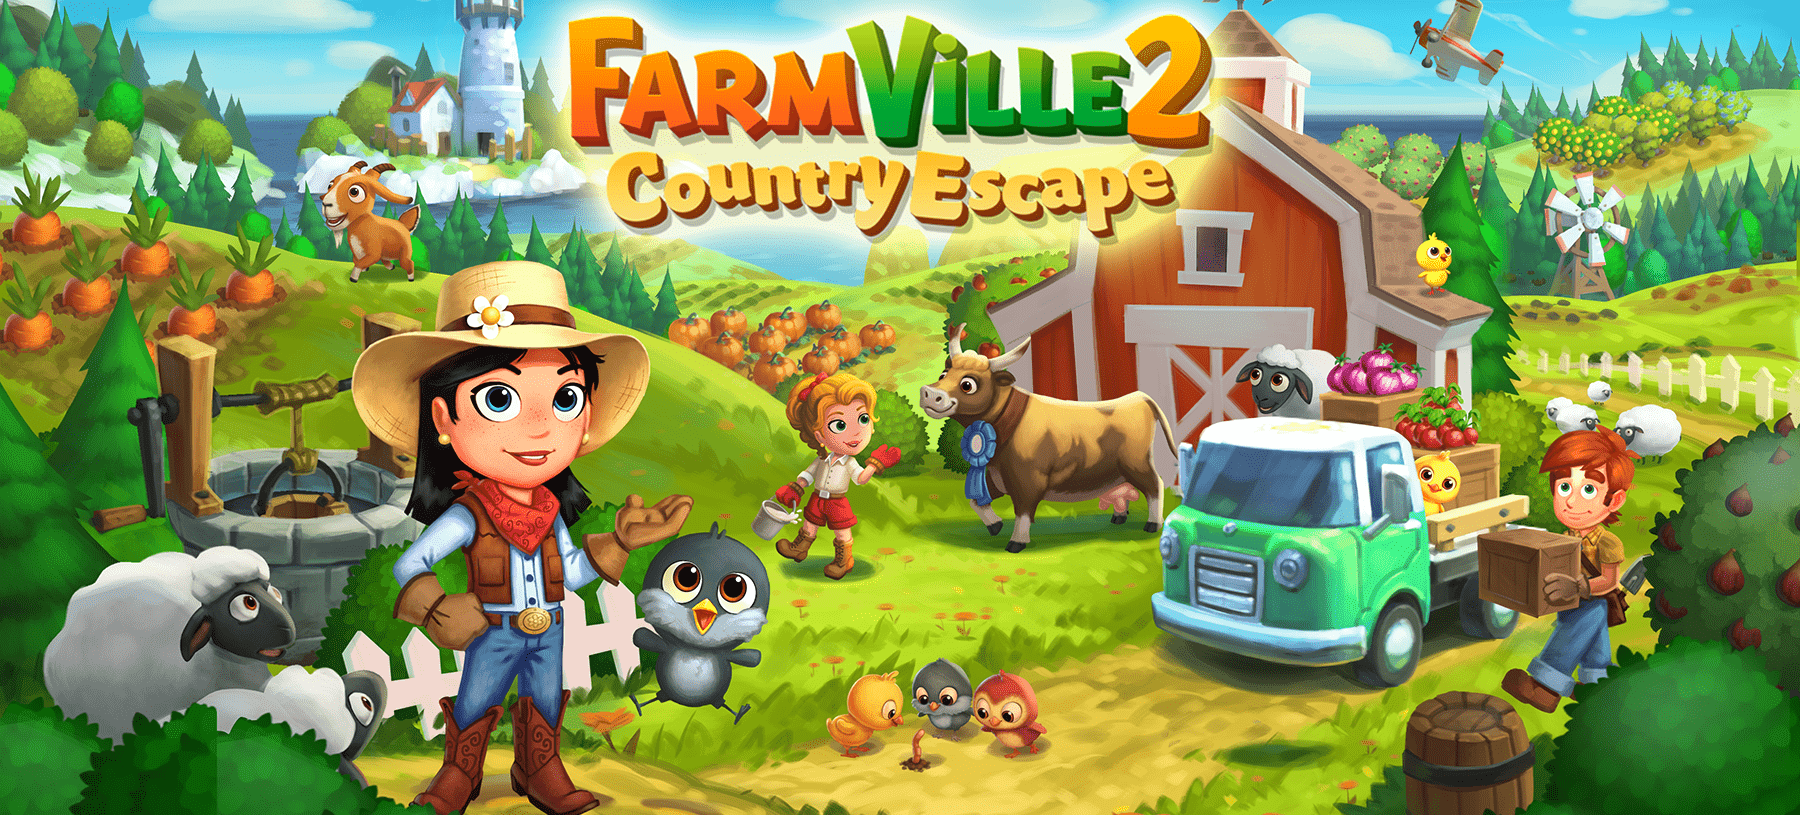 Image result for Farmville 2